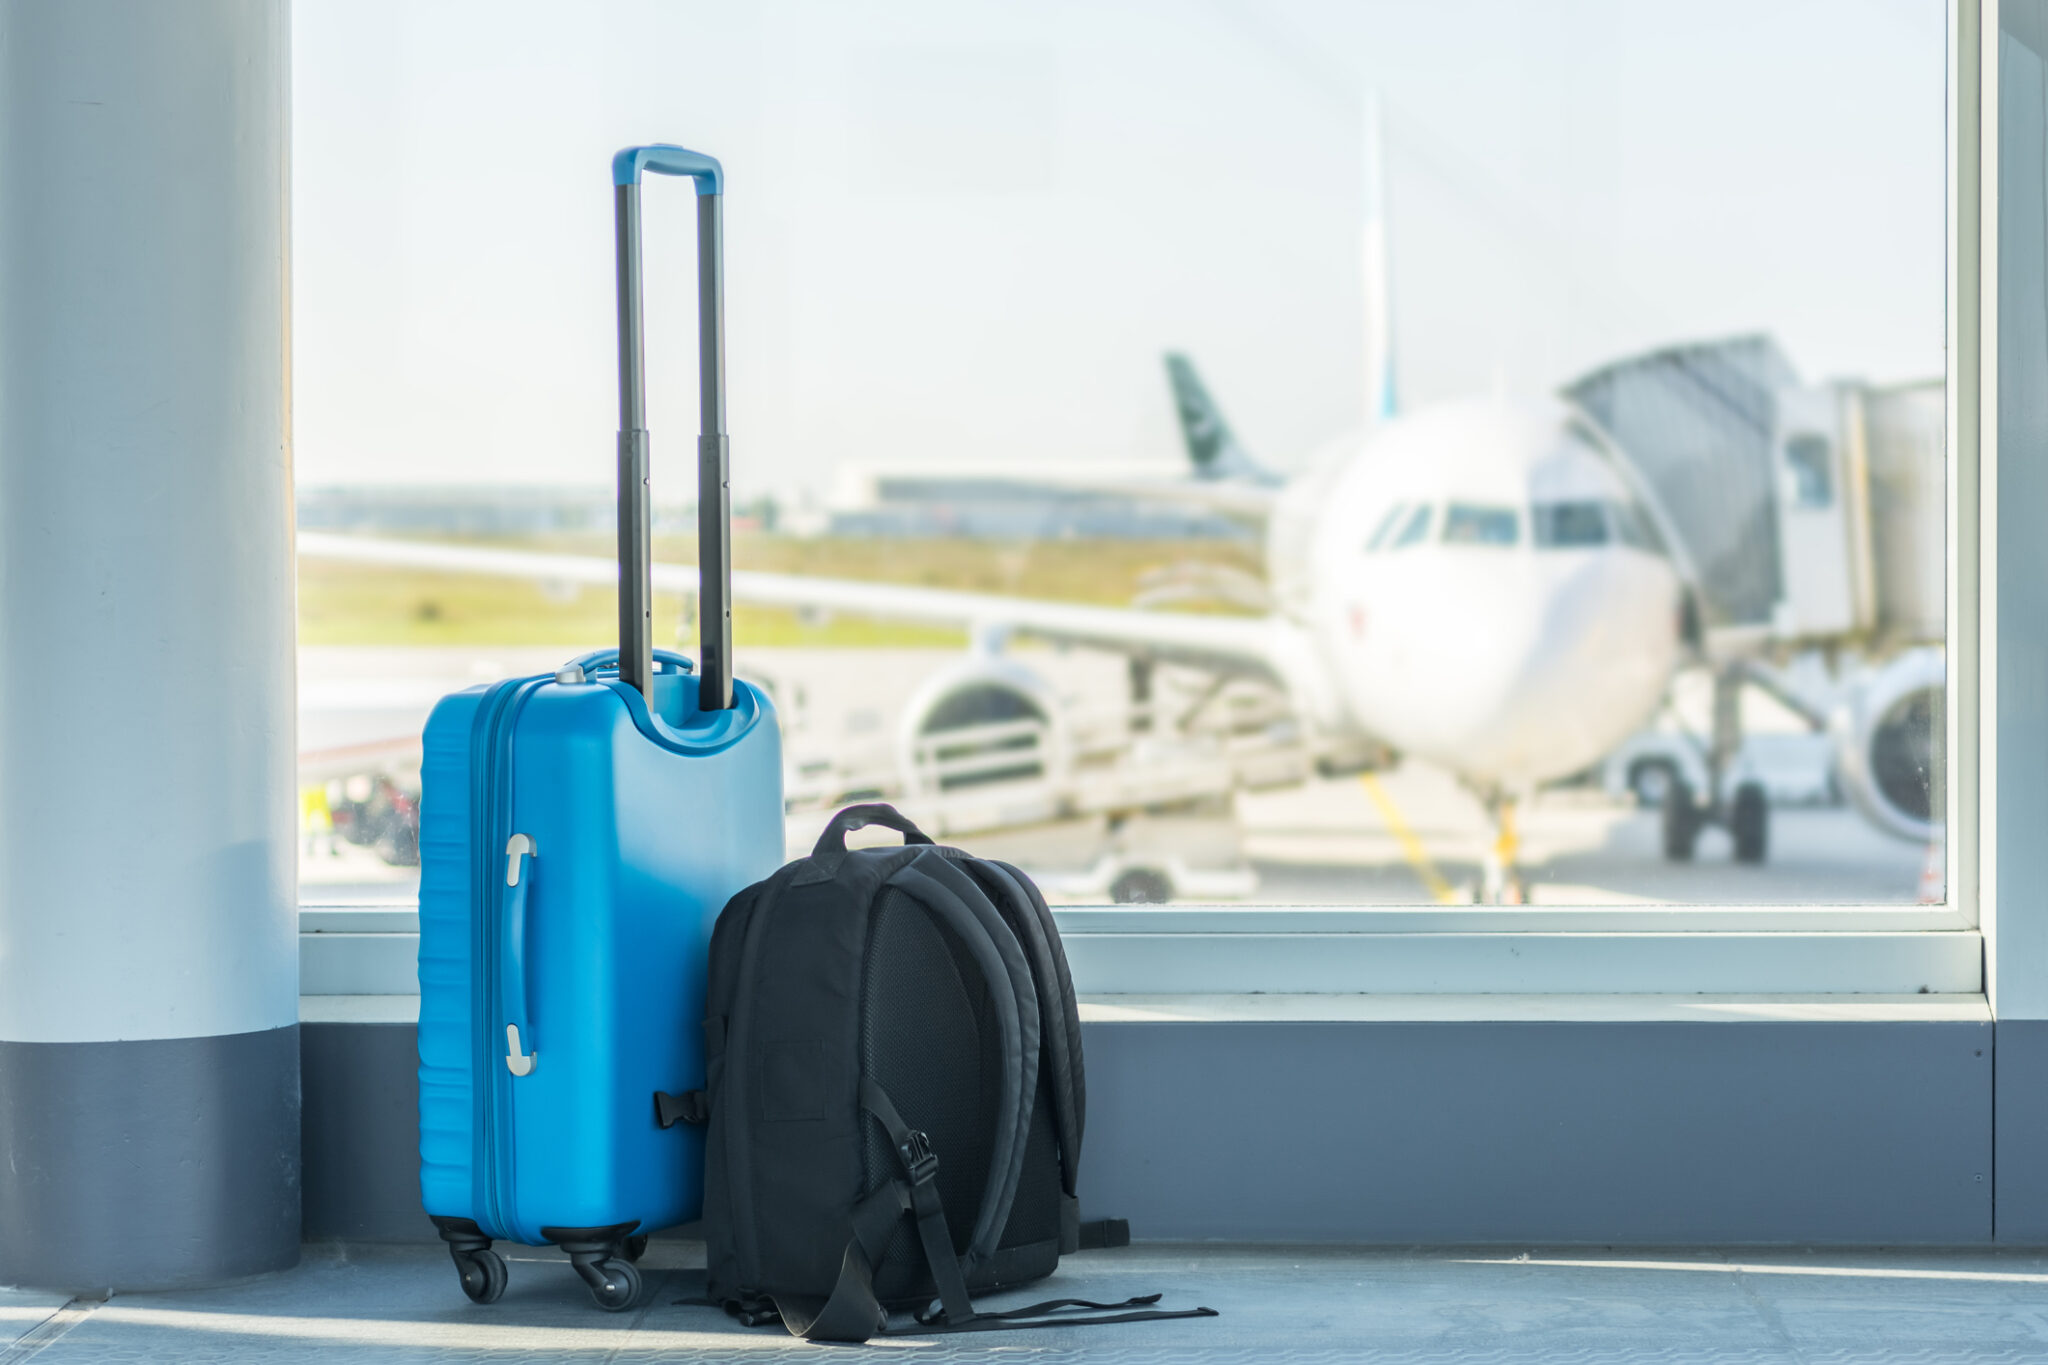 Airport Luggage includes the best carry-on luggage